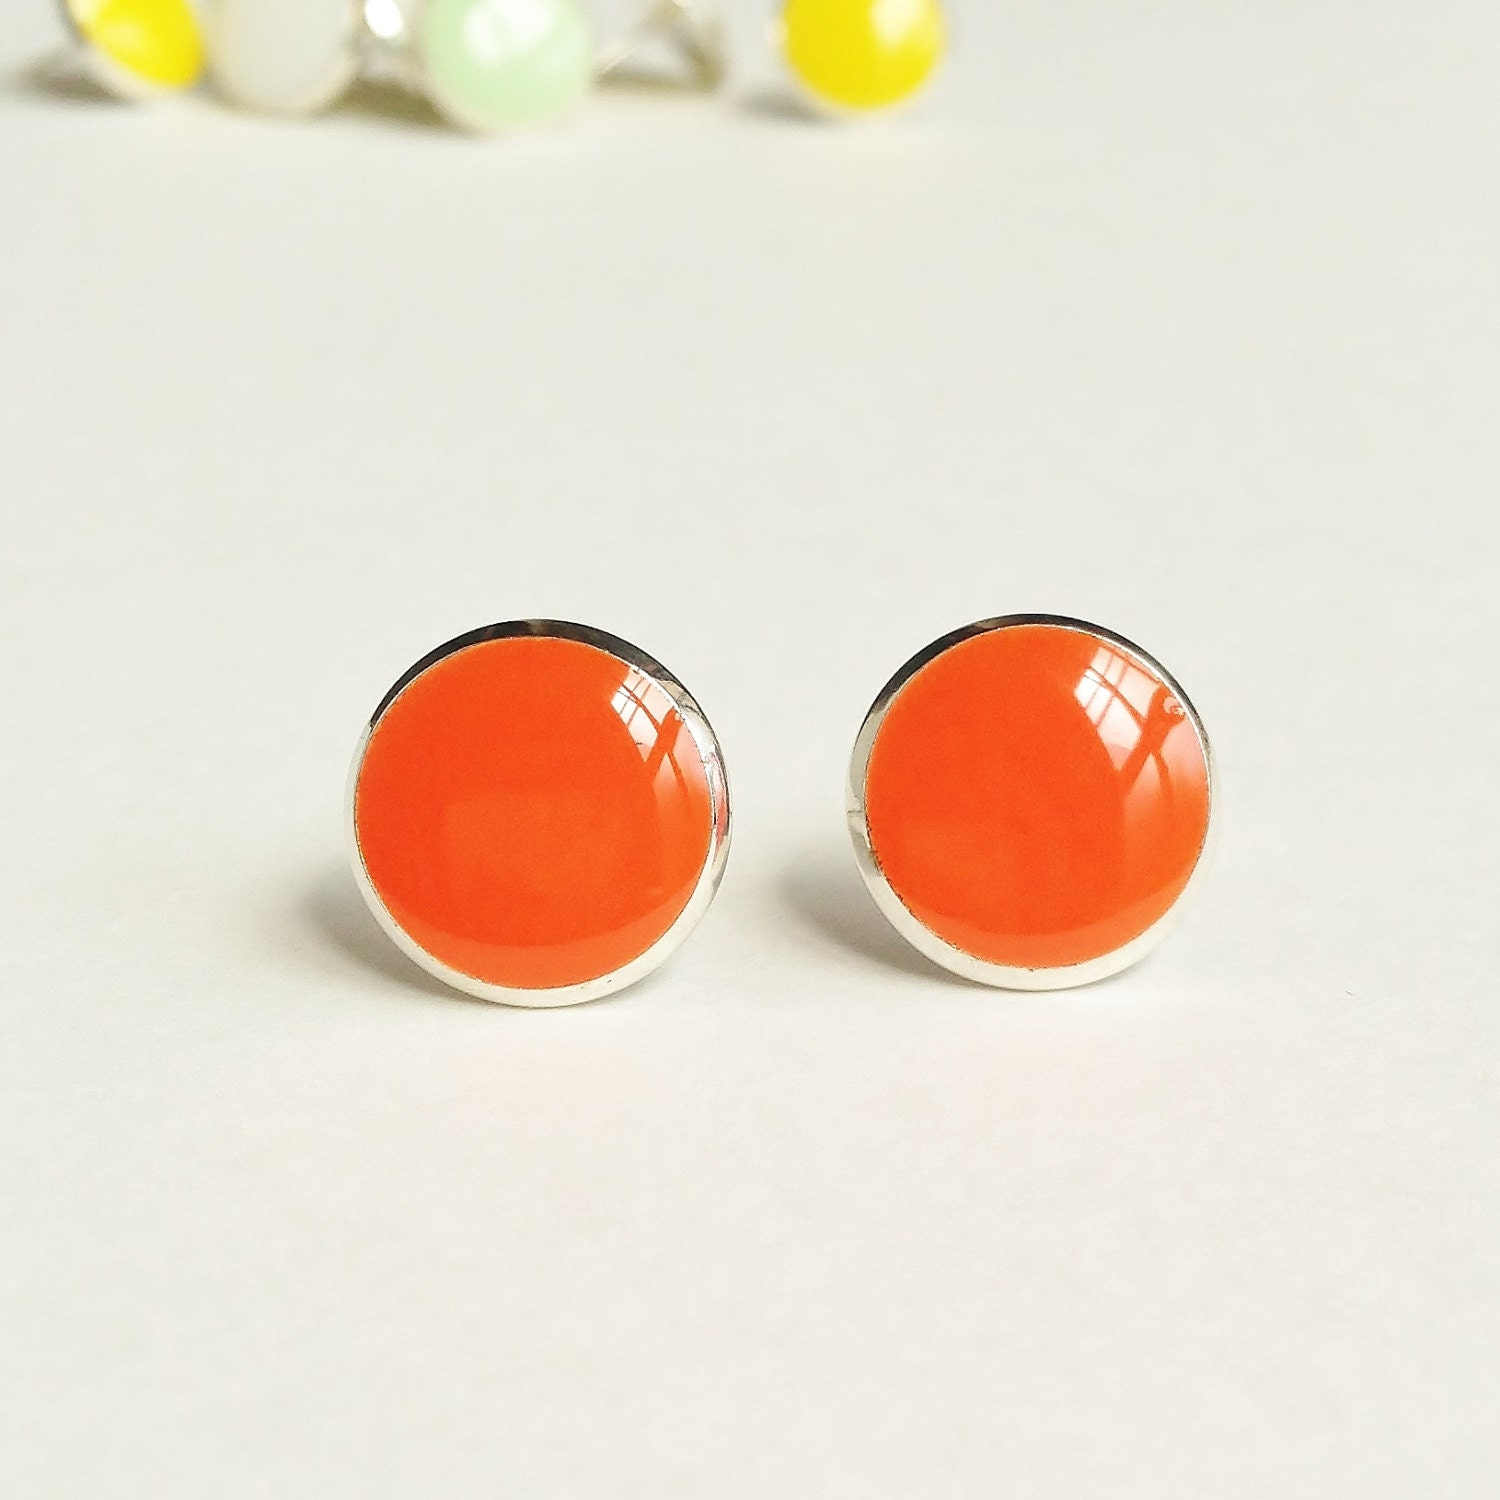 jewel pin hydrothermal bright and cultured pearls tous vermeil earrings with